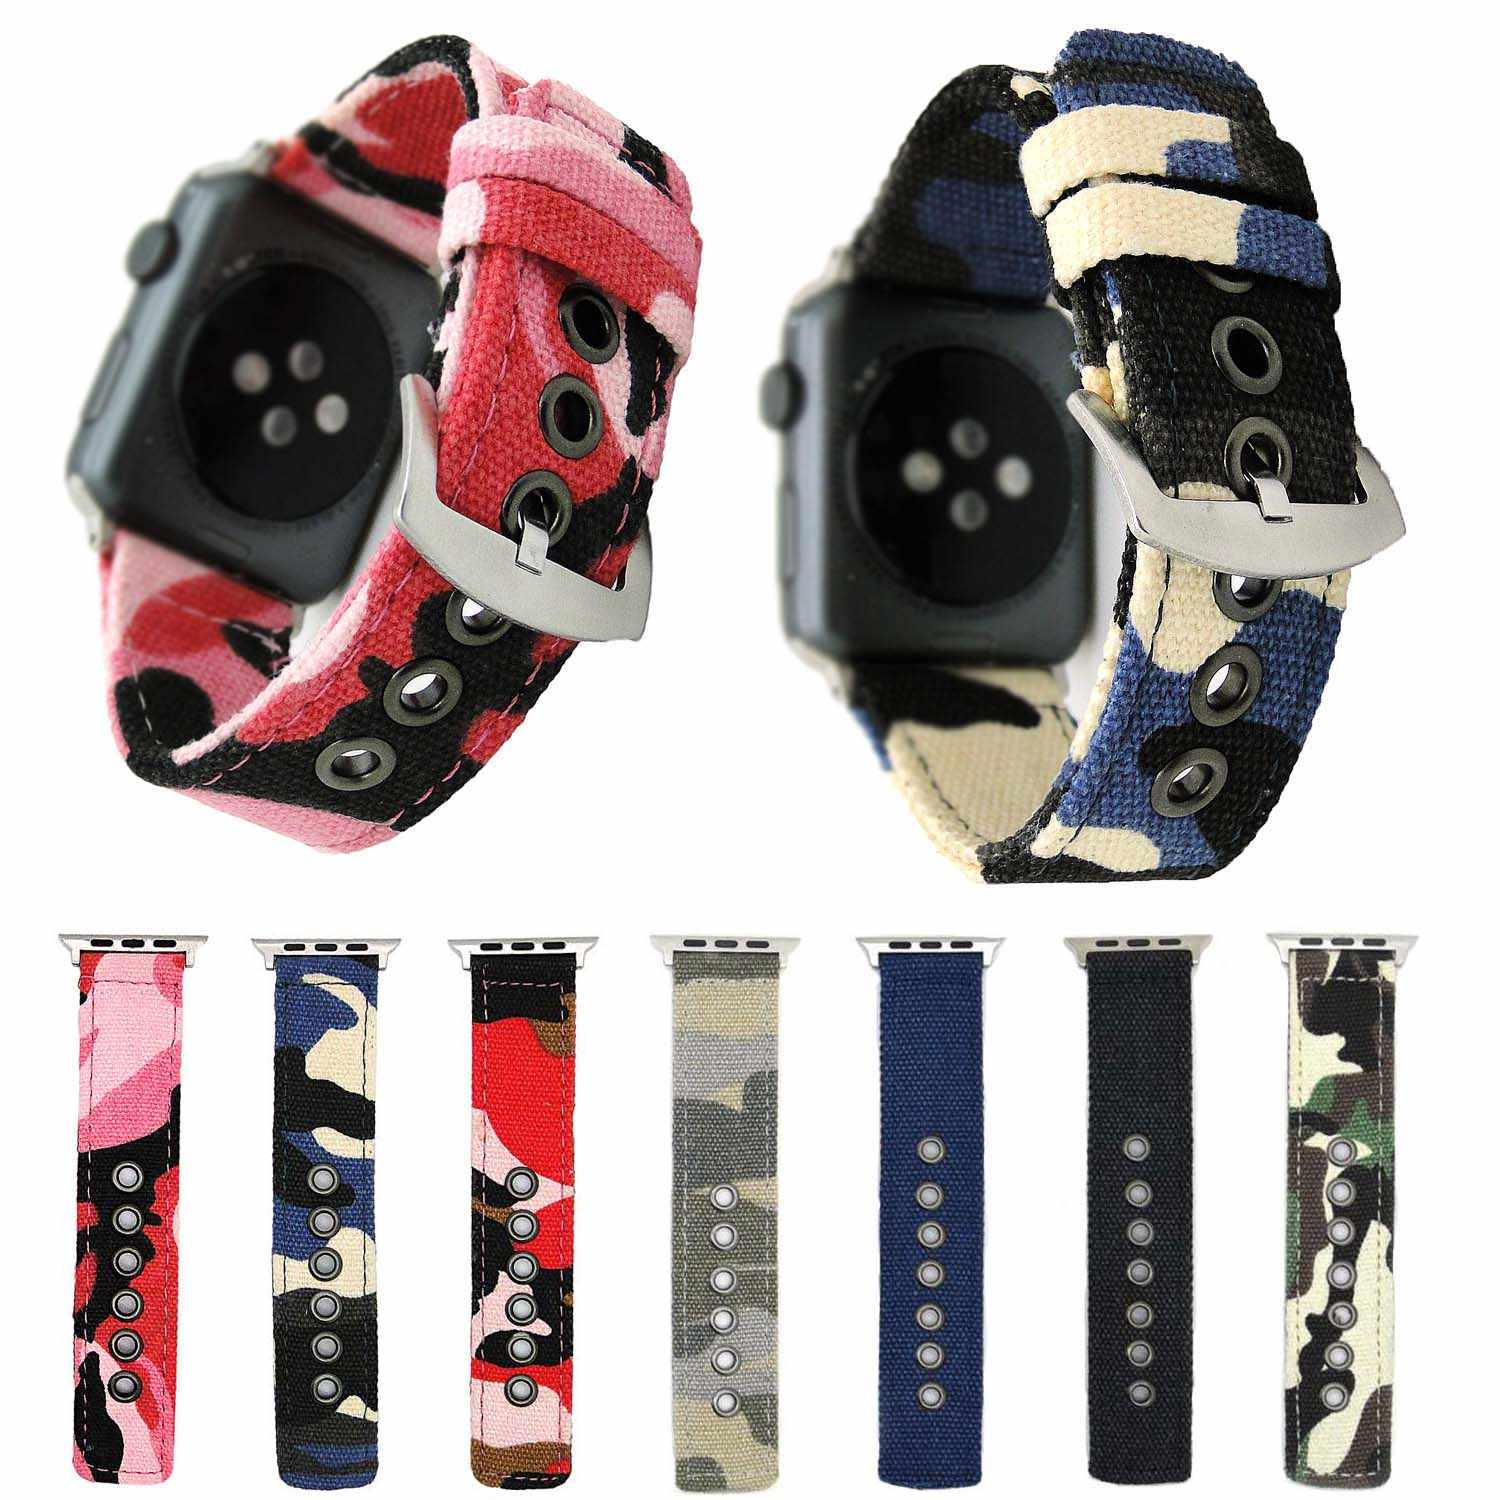 Sports Camouflage Fabric Band for Apple Watch Strap Durable Canvas Bracelet for iWatch Series 3 2 1 Wristband 42mm 38mm Adapters